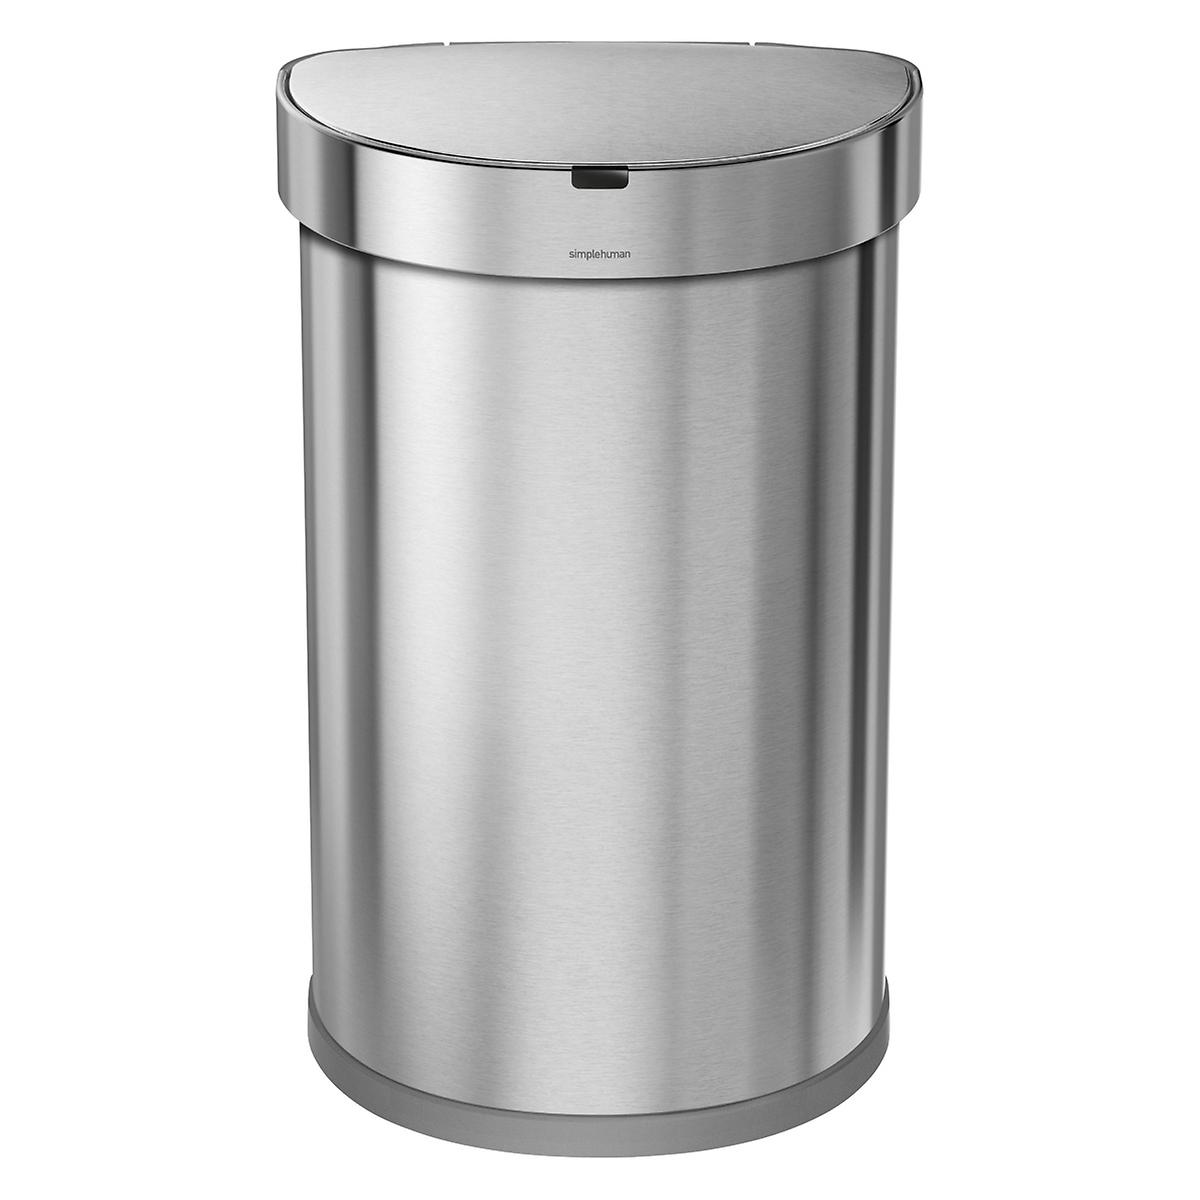 simplehuman Stainless Steel 12 gal. Semi-Round Sensor Trash Can